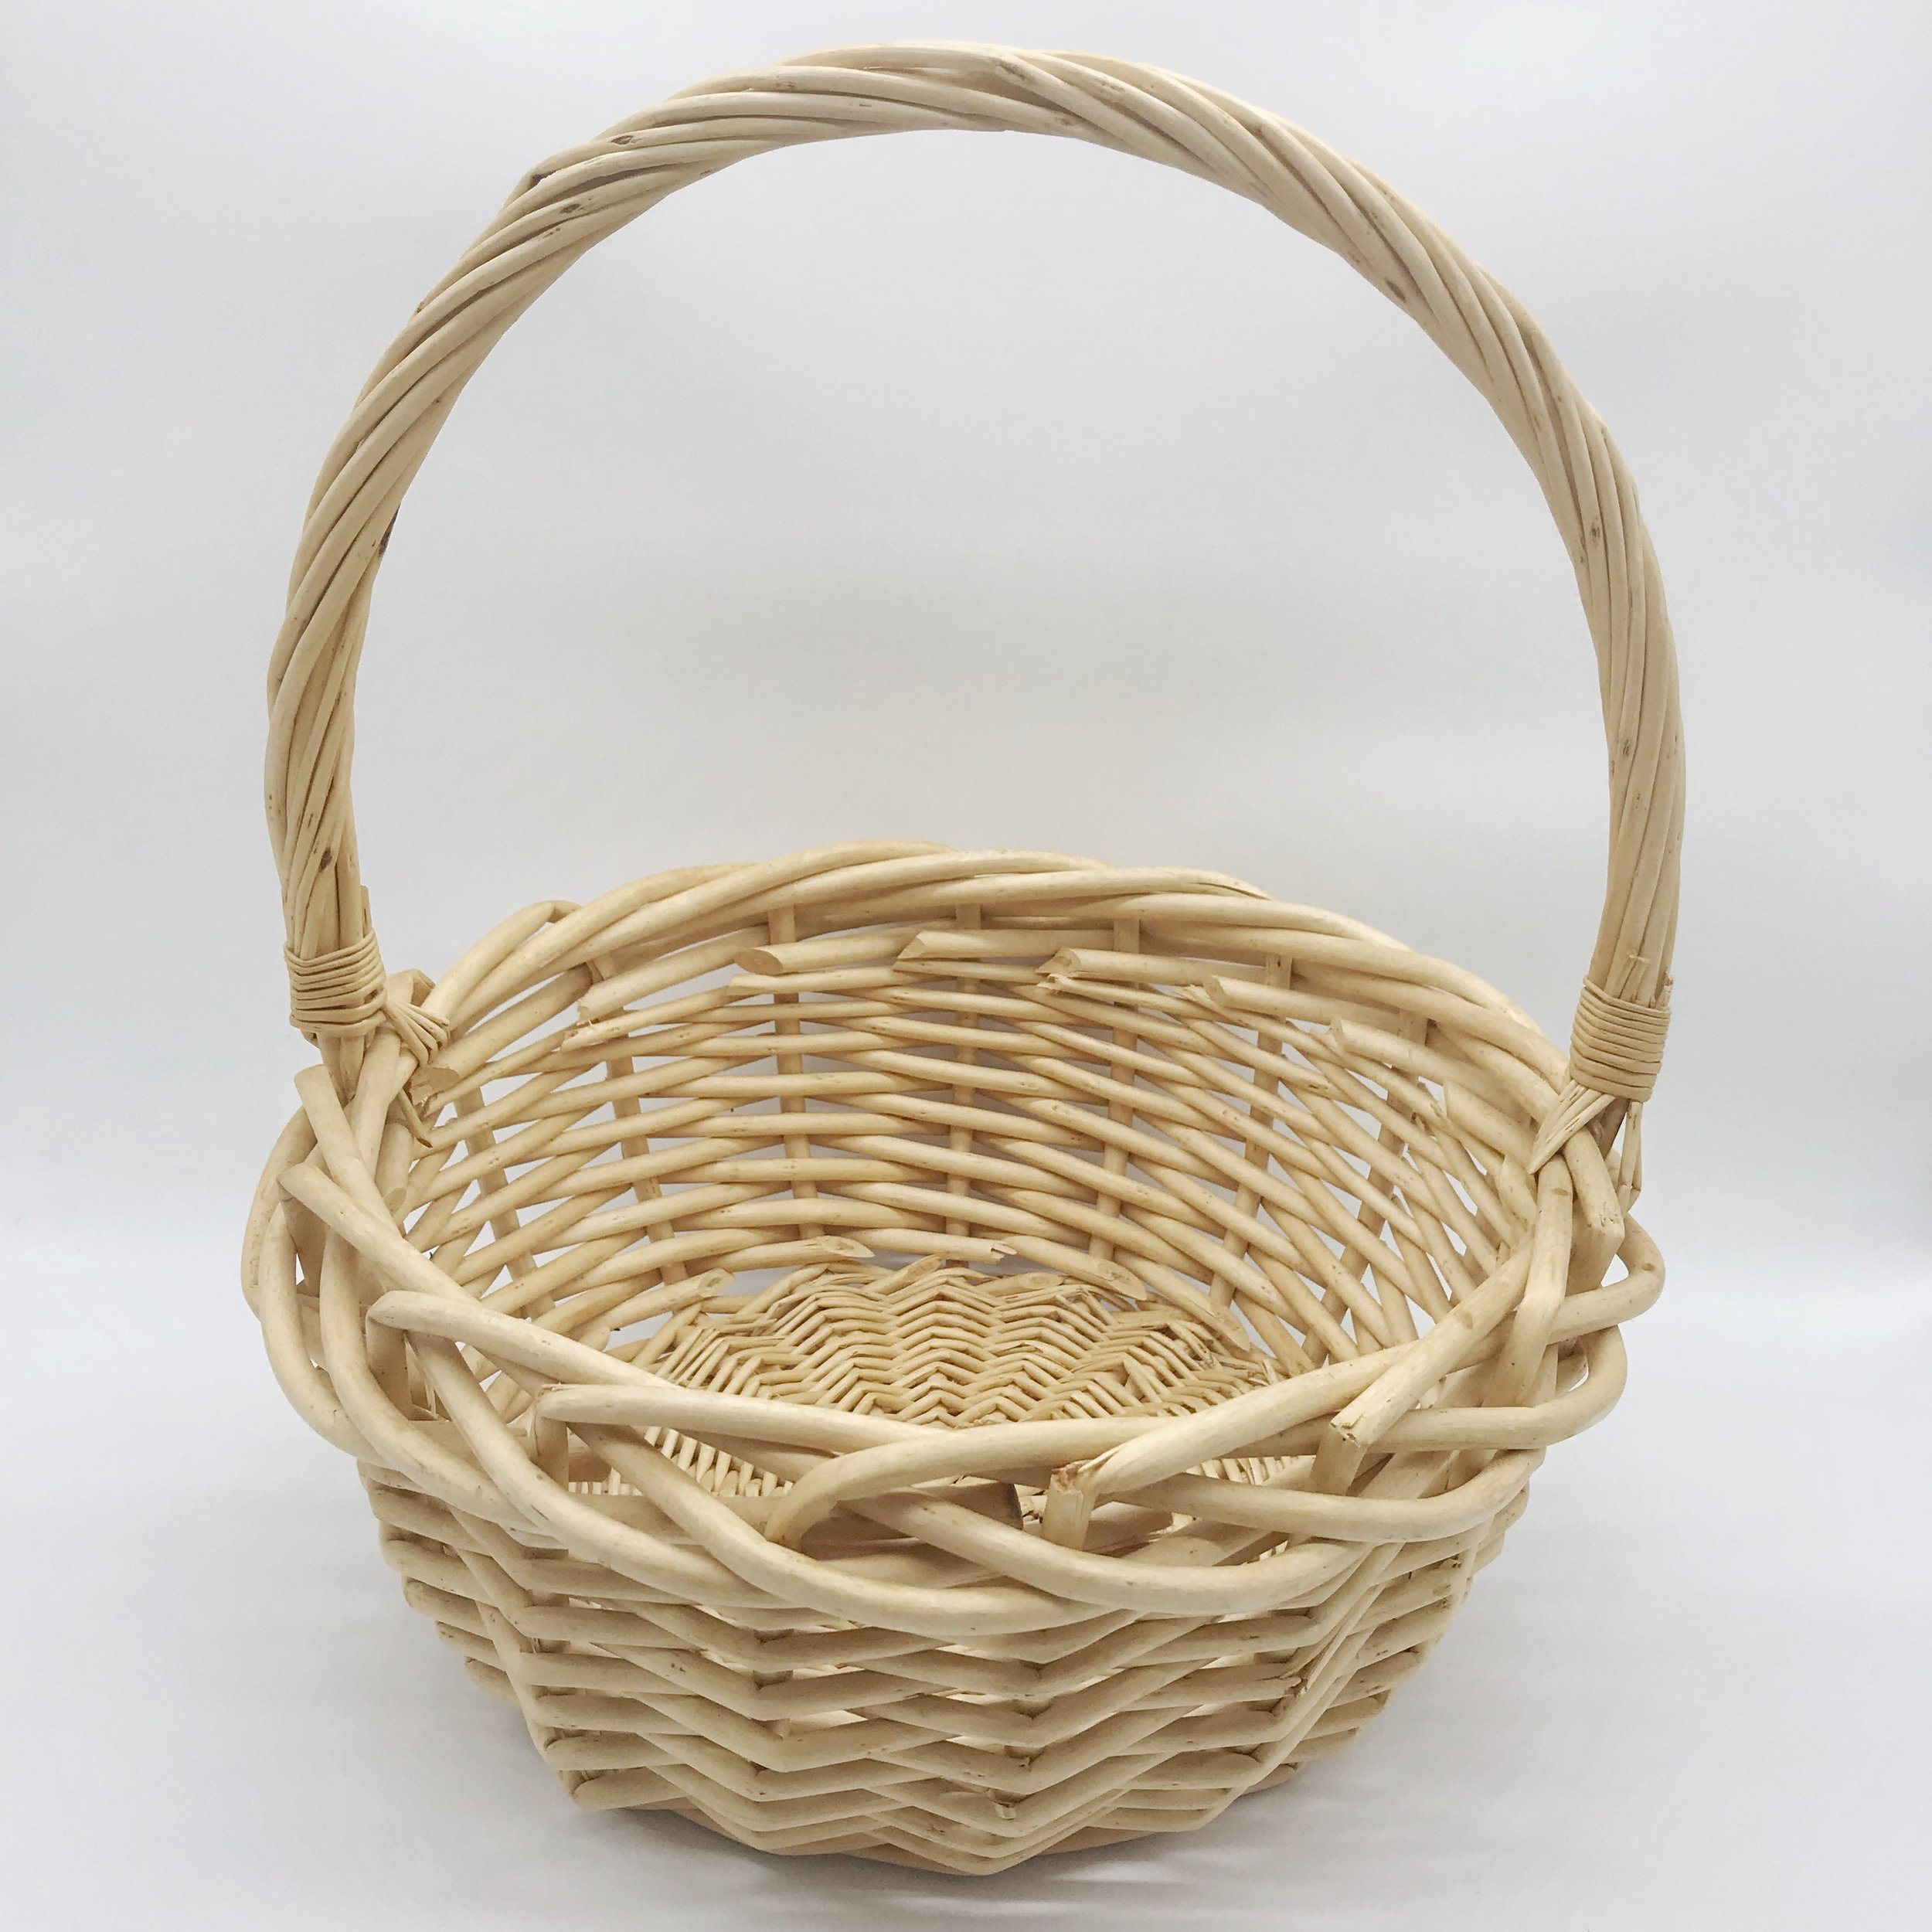 Basket - cane (small)  Price: $3.00  Qty: 1